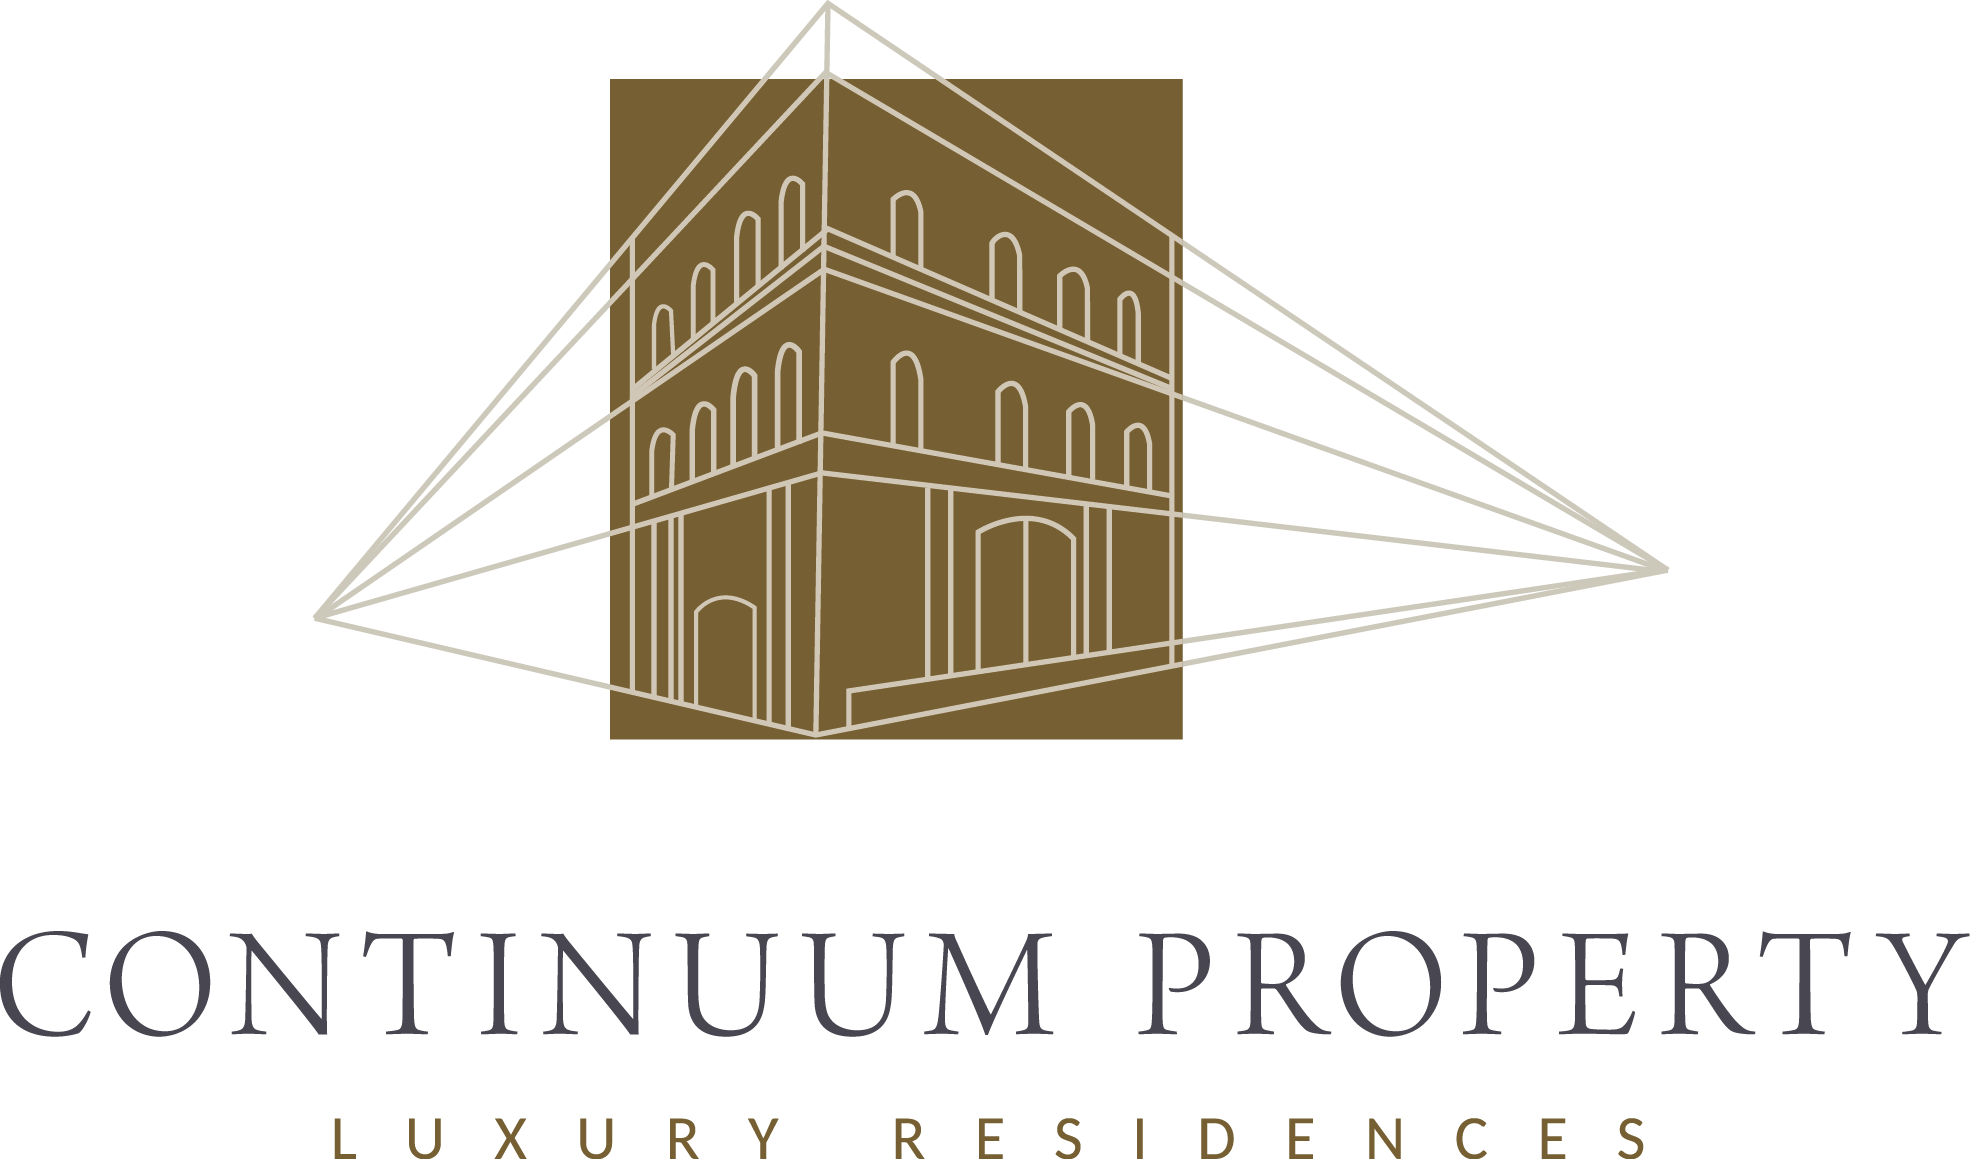 Logo and website for an ultra luxury residence development company